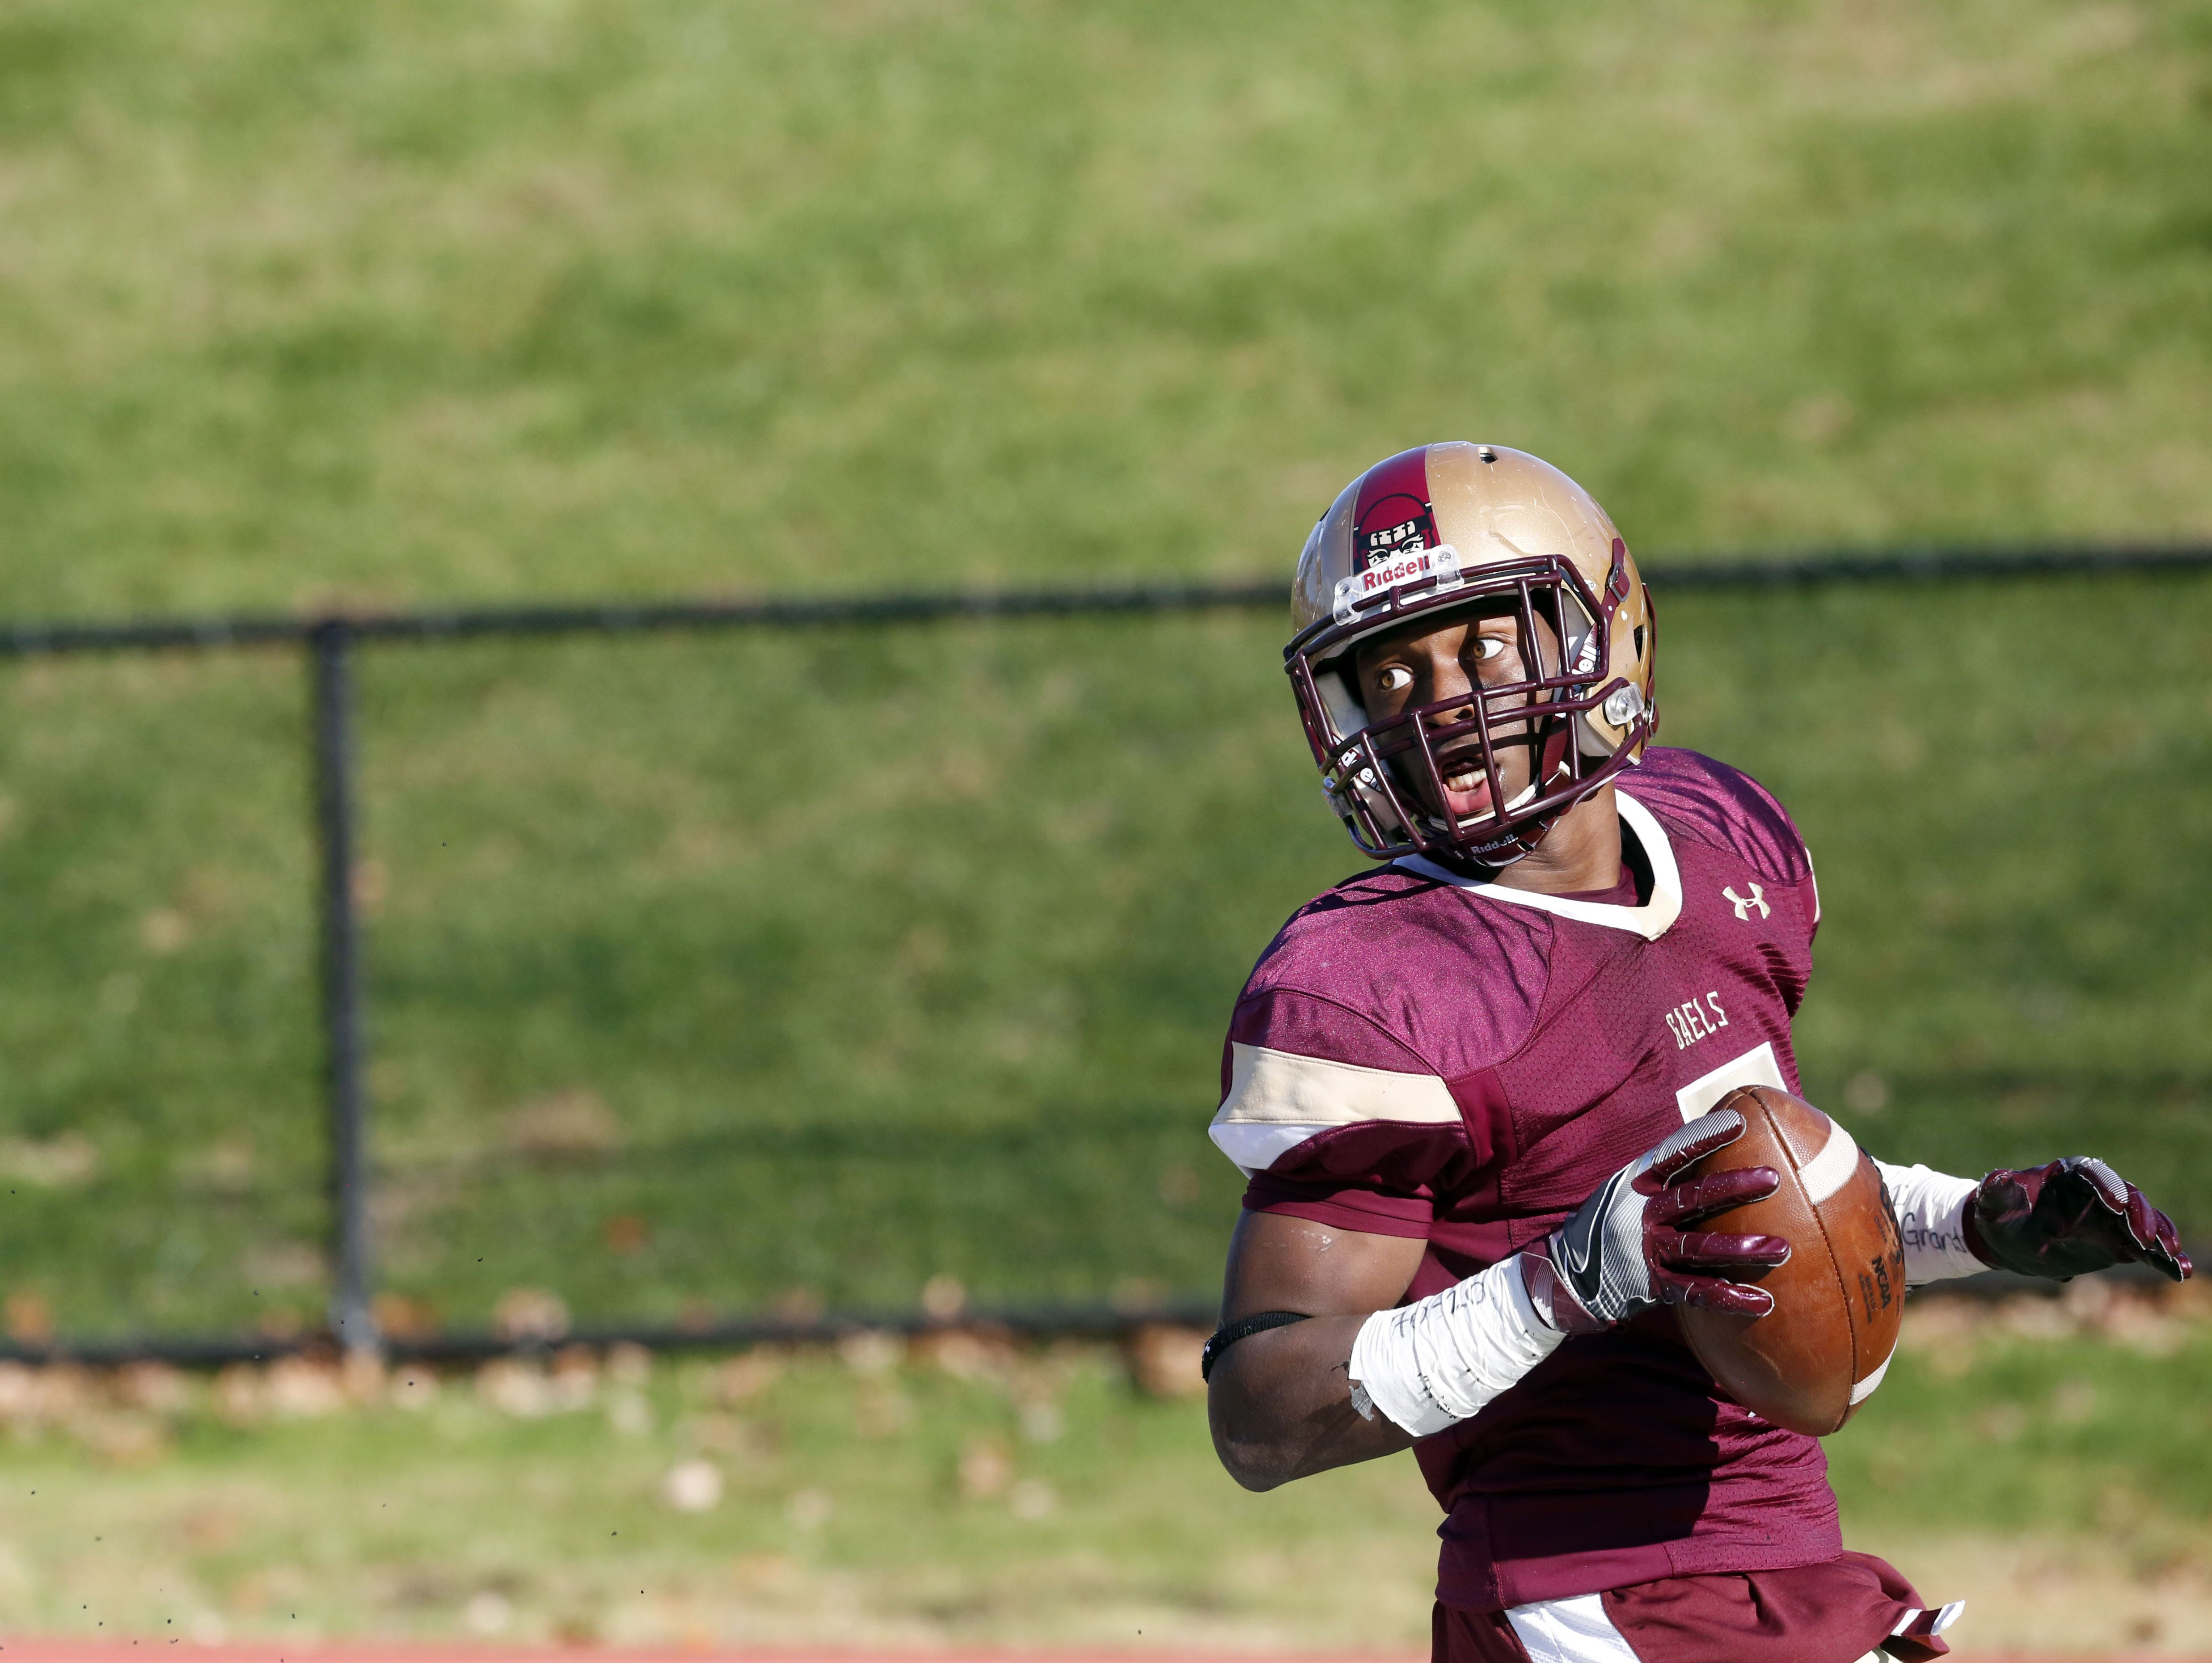 Iona Prep's Ki'Shyne Shipmon looks back after scoring a touchdown against Fordham Prep in the quarterfinals of the Catholic High School Football League Nov. 6, 2016 at Iona Prep in New Rochelle. Iona Prep won, 41-0.